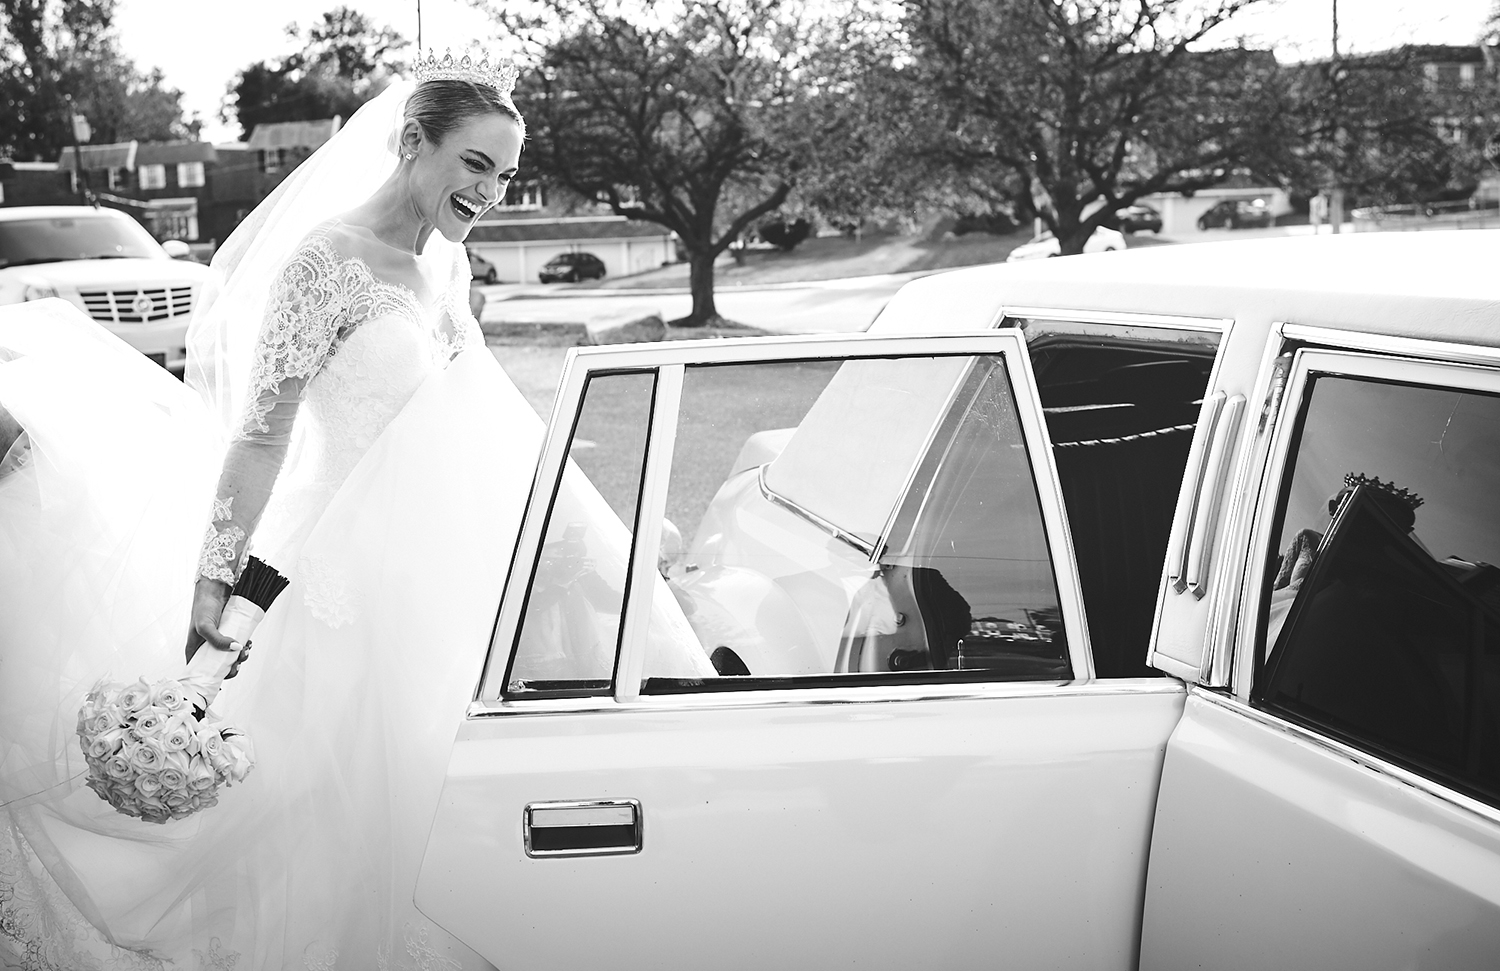 171111_CairnwoodEstateWeddingPhotography_PAWeddingPhotographer_By_BriJohnsonWeddings_0064.jpg